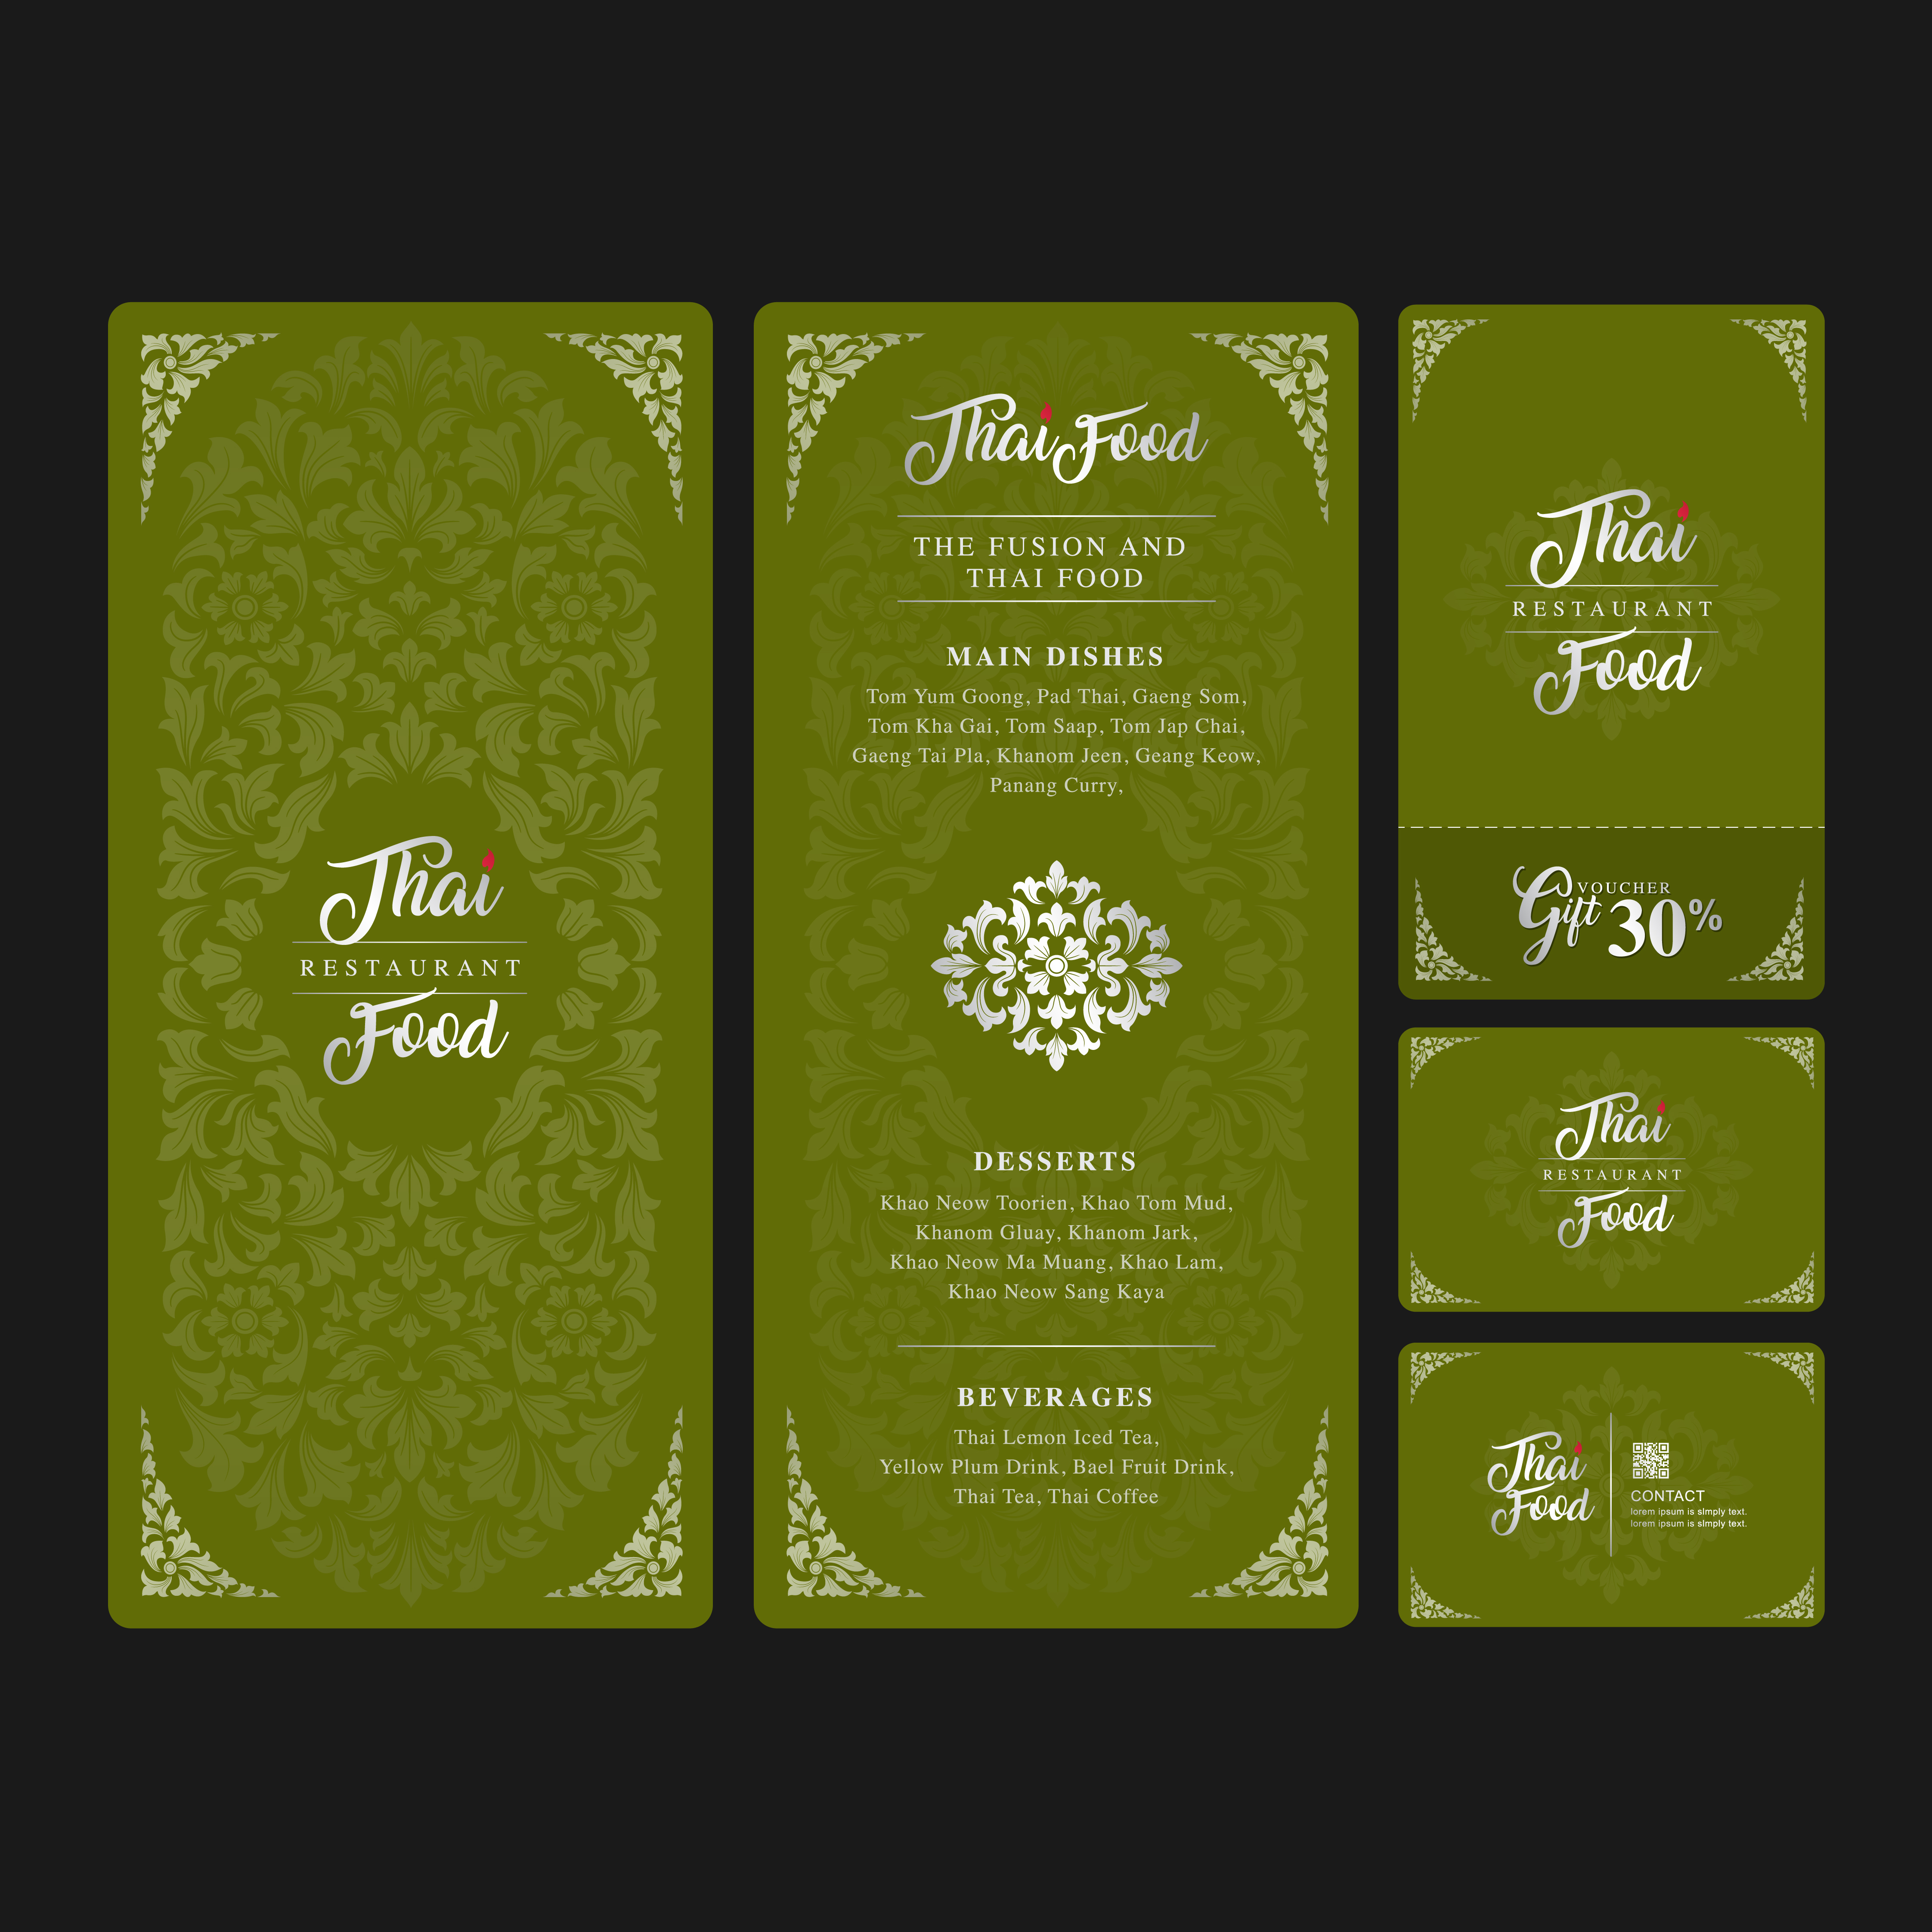 Thai Food And Fusion Food Restaurant Menu Gift Voucher And Name Card Design Template Decoration For Printing Vector Illustration Download Free Vectors Clipart Graphics Vector Art